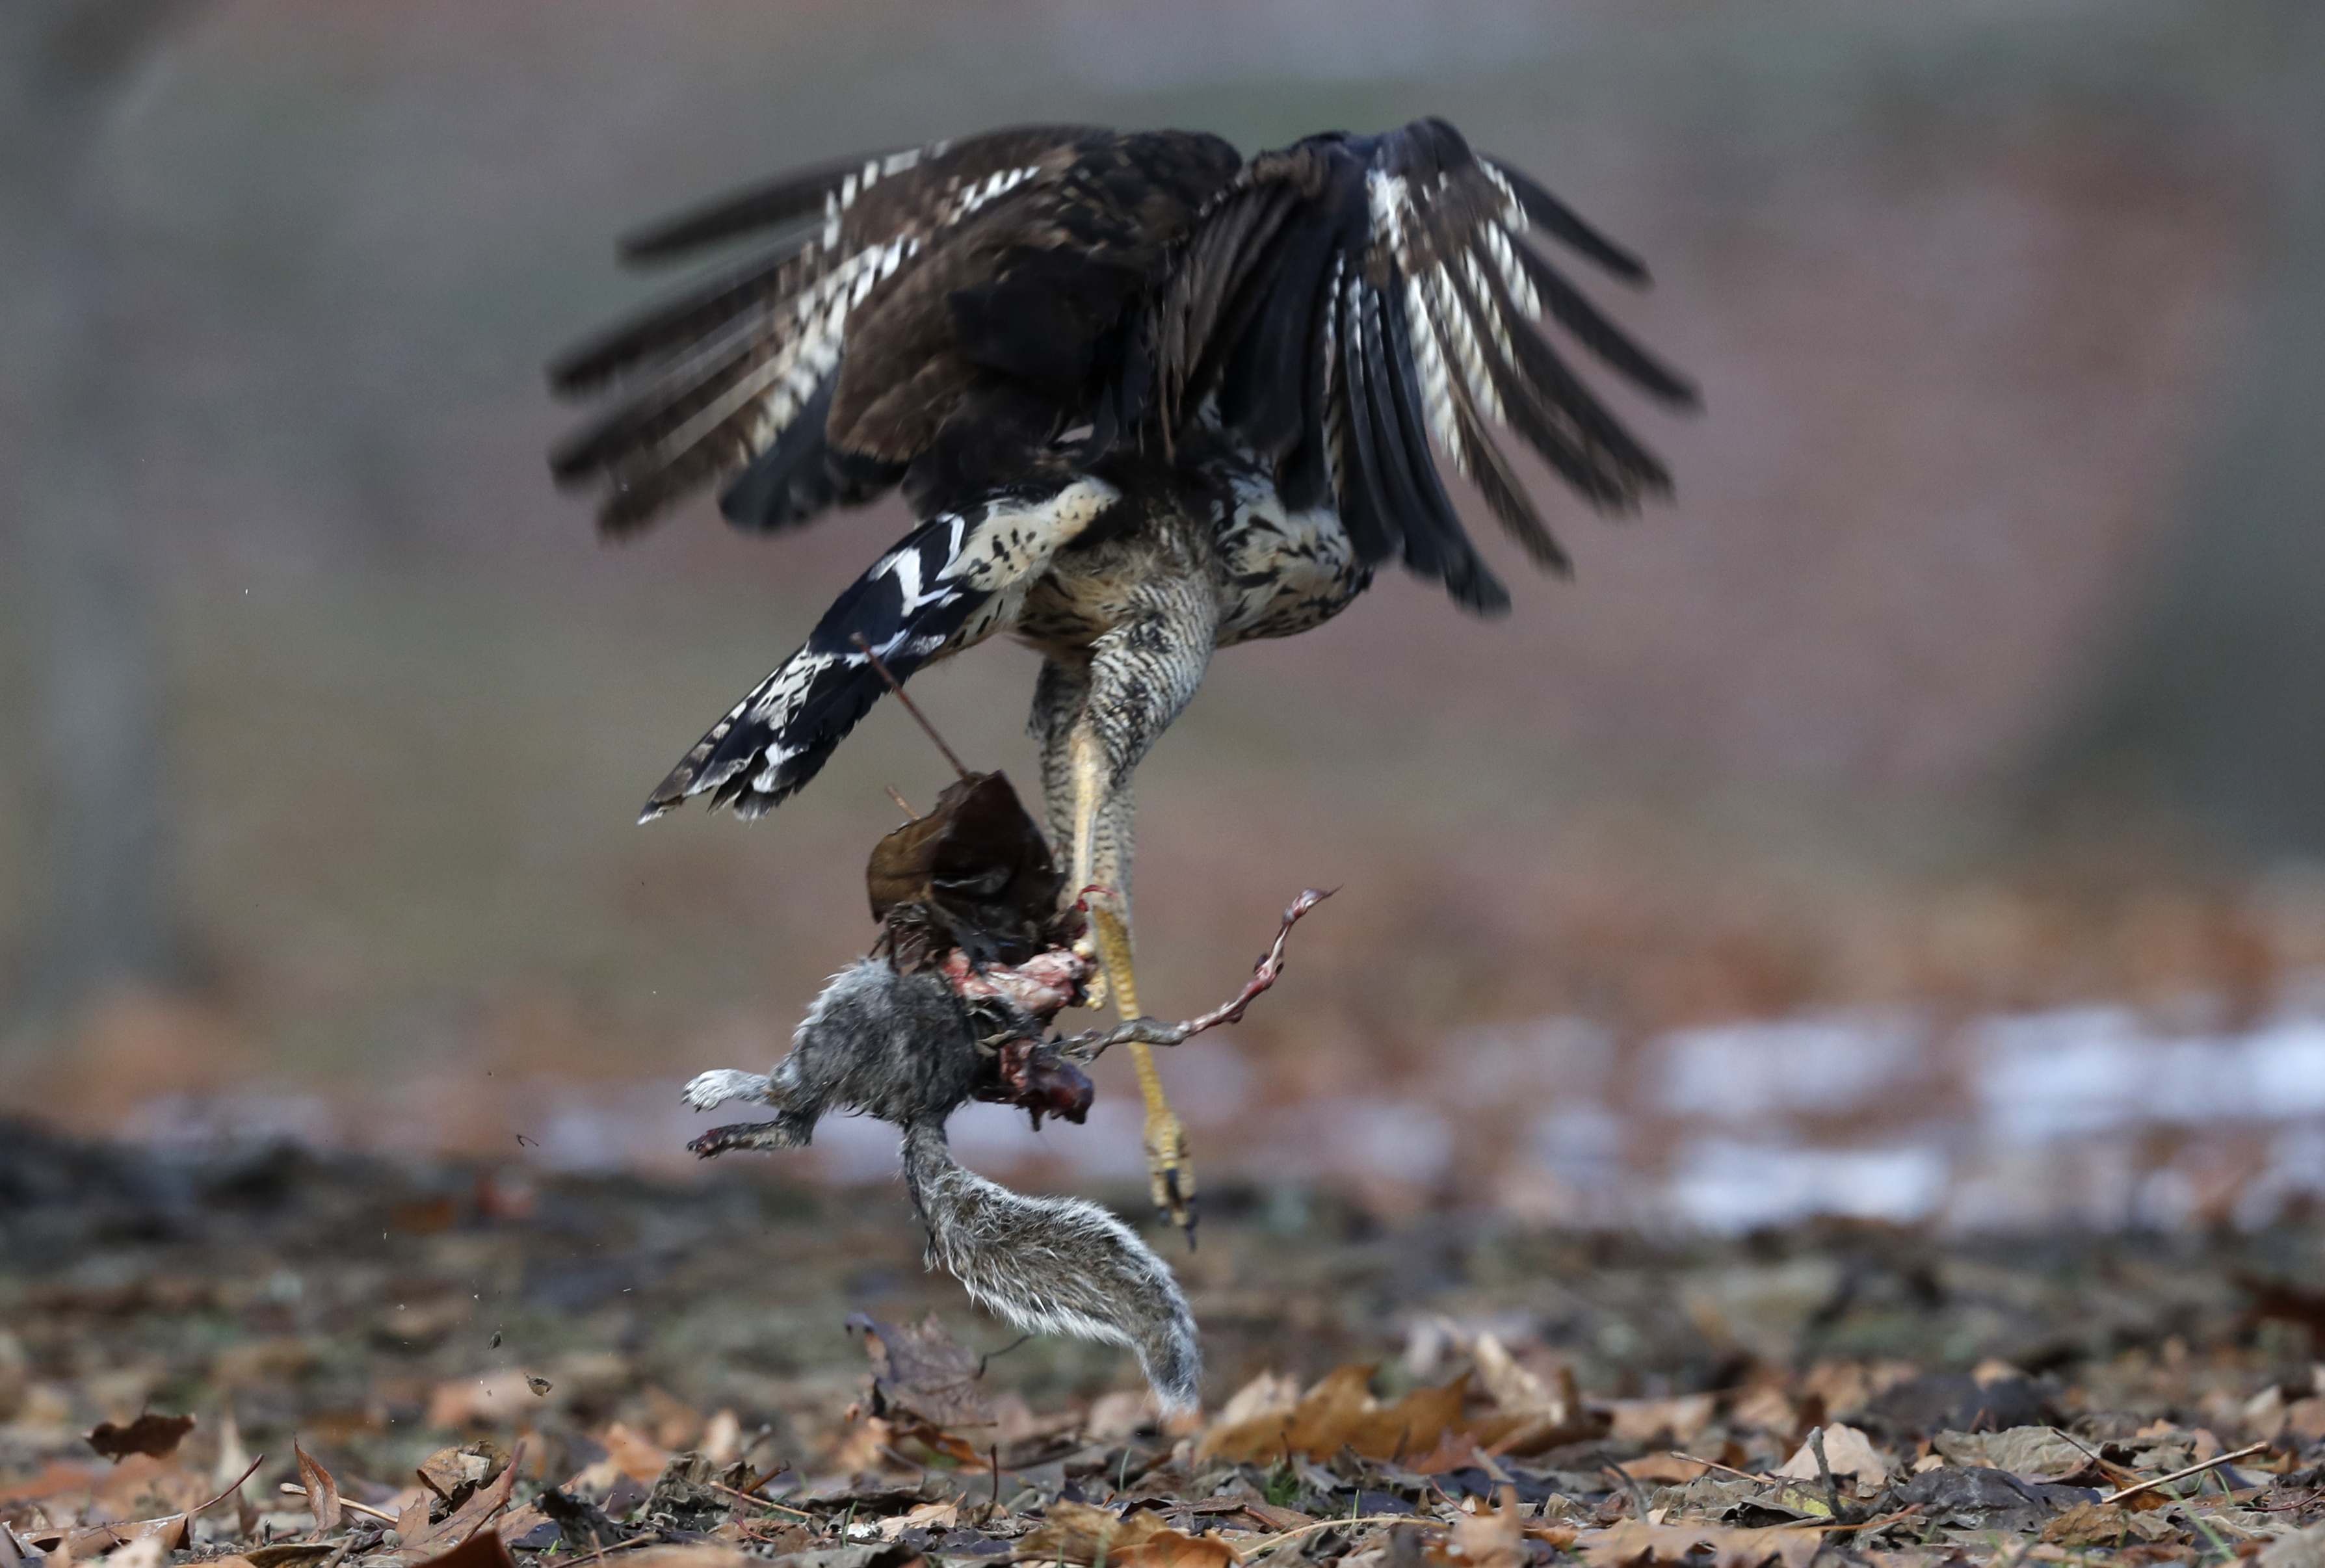 A great black hawk, a native of Central and South America, takes off with a gray squirrel at Deering Oaks Park, Friday, Nov. 30, 2018, in Portland, Maine. Audubon has called it potentially the first record of the species in the U.S. (AP Photo/Robert F. Bukaty)